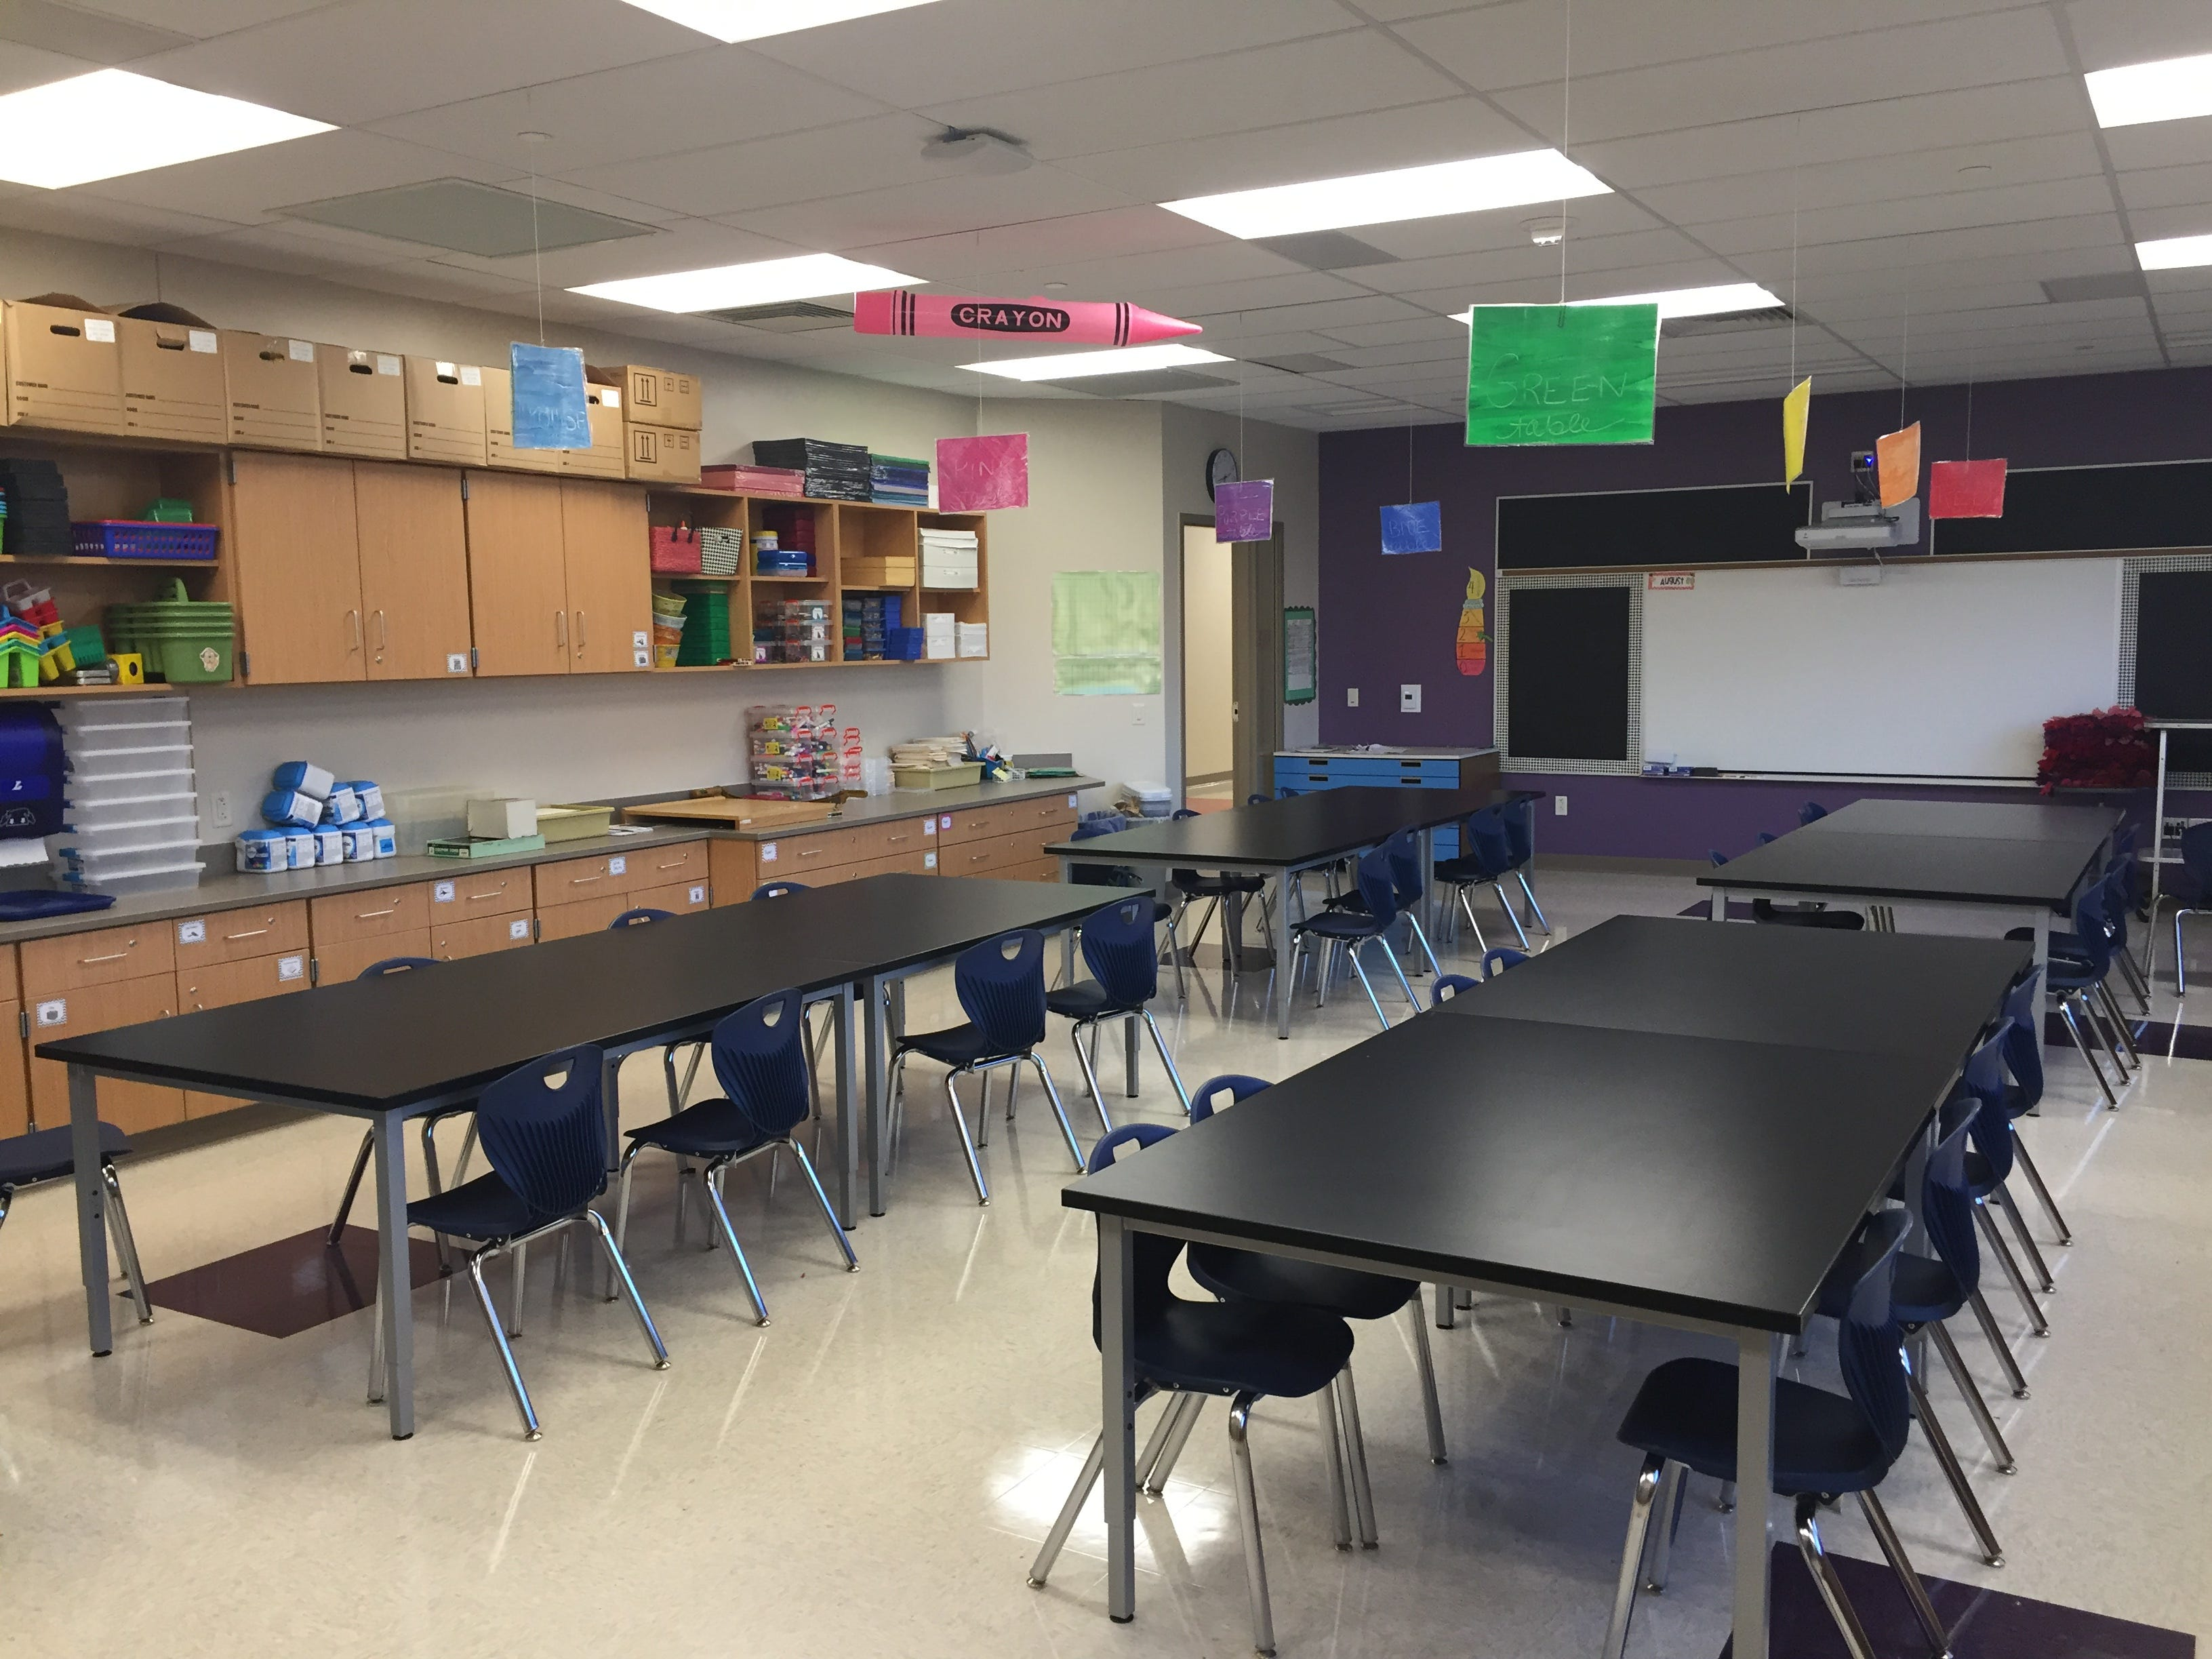 The art room in Lebanon School District's new Northwest Elementary School Aug. 23, 2018.